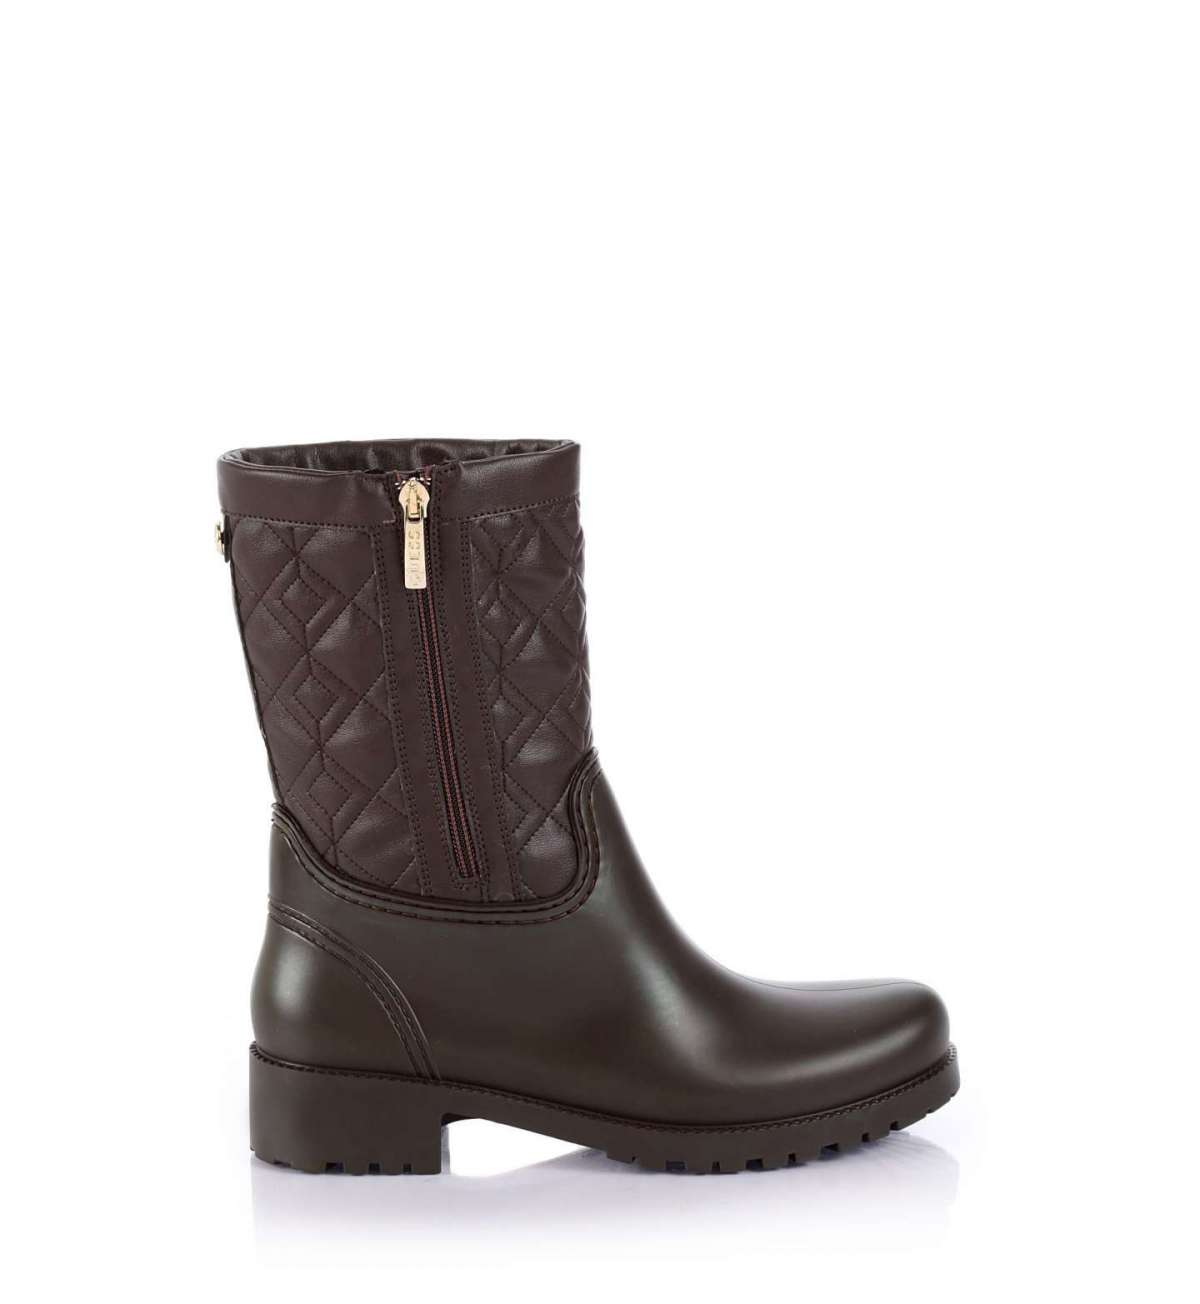 Biker Boot Marroni Guess Autunno Inverno 2017